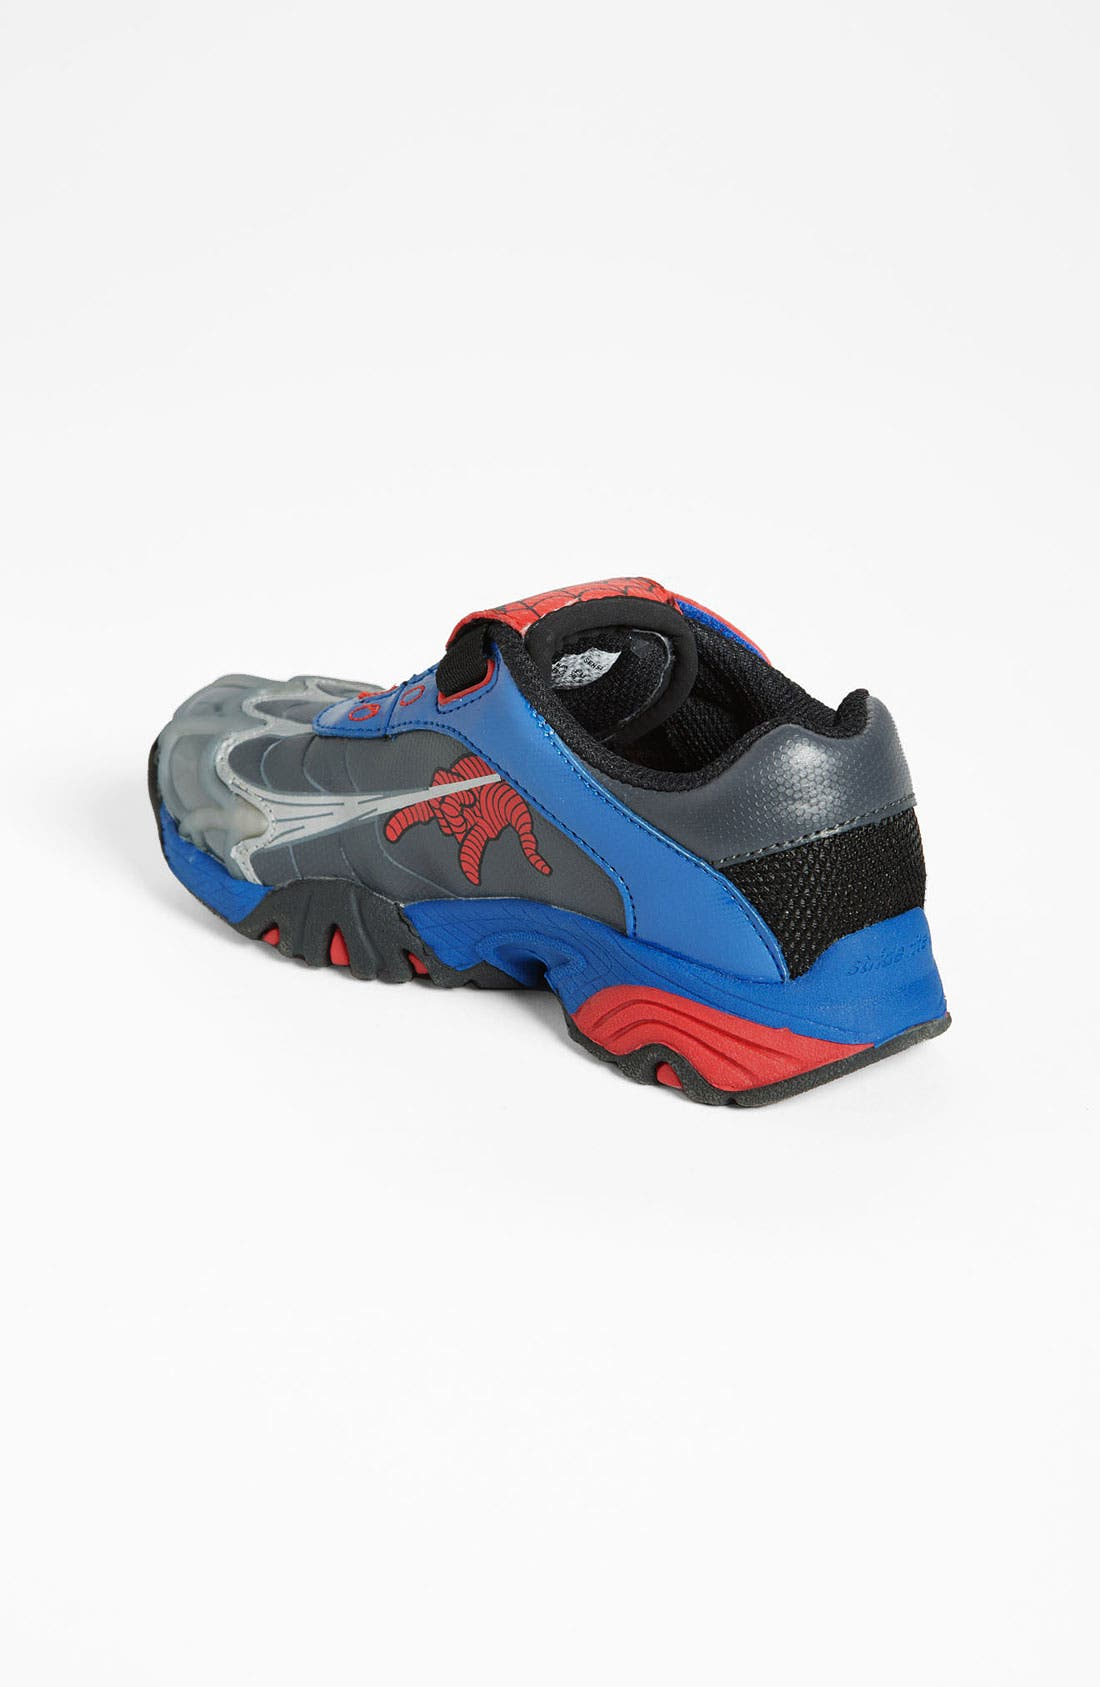 Alternate Image 2  - Stride Rite 'Spidey Sense' Sneaker (Toddler & Little Kid)